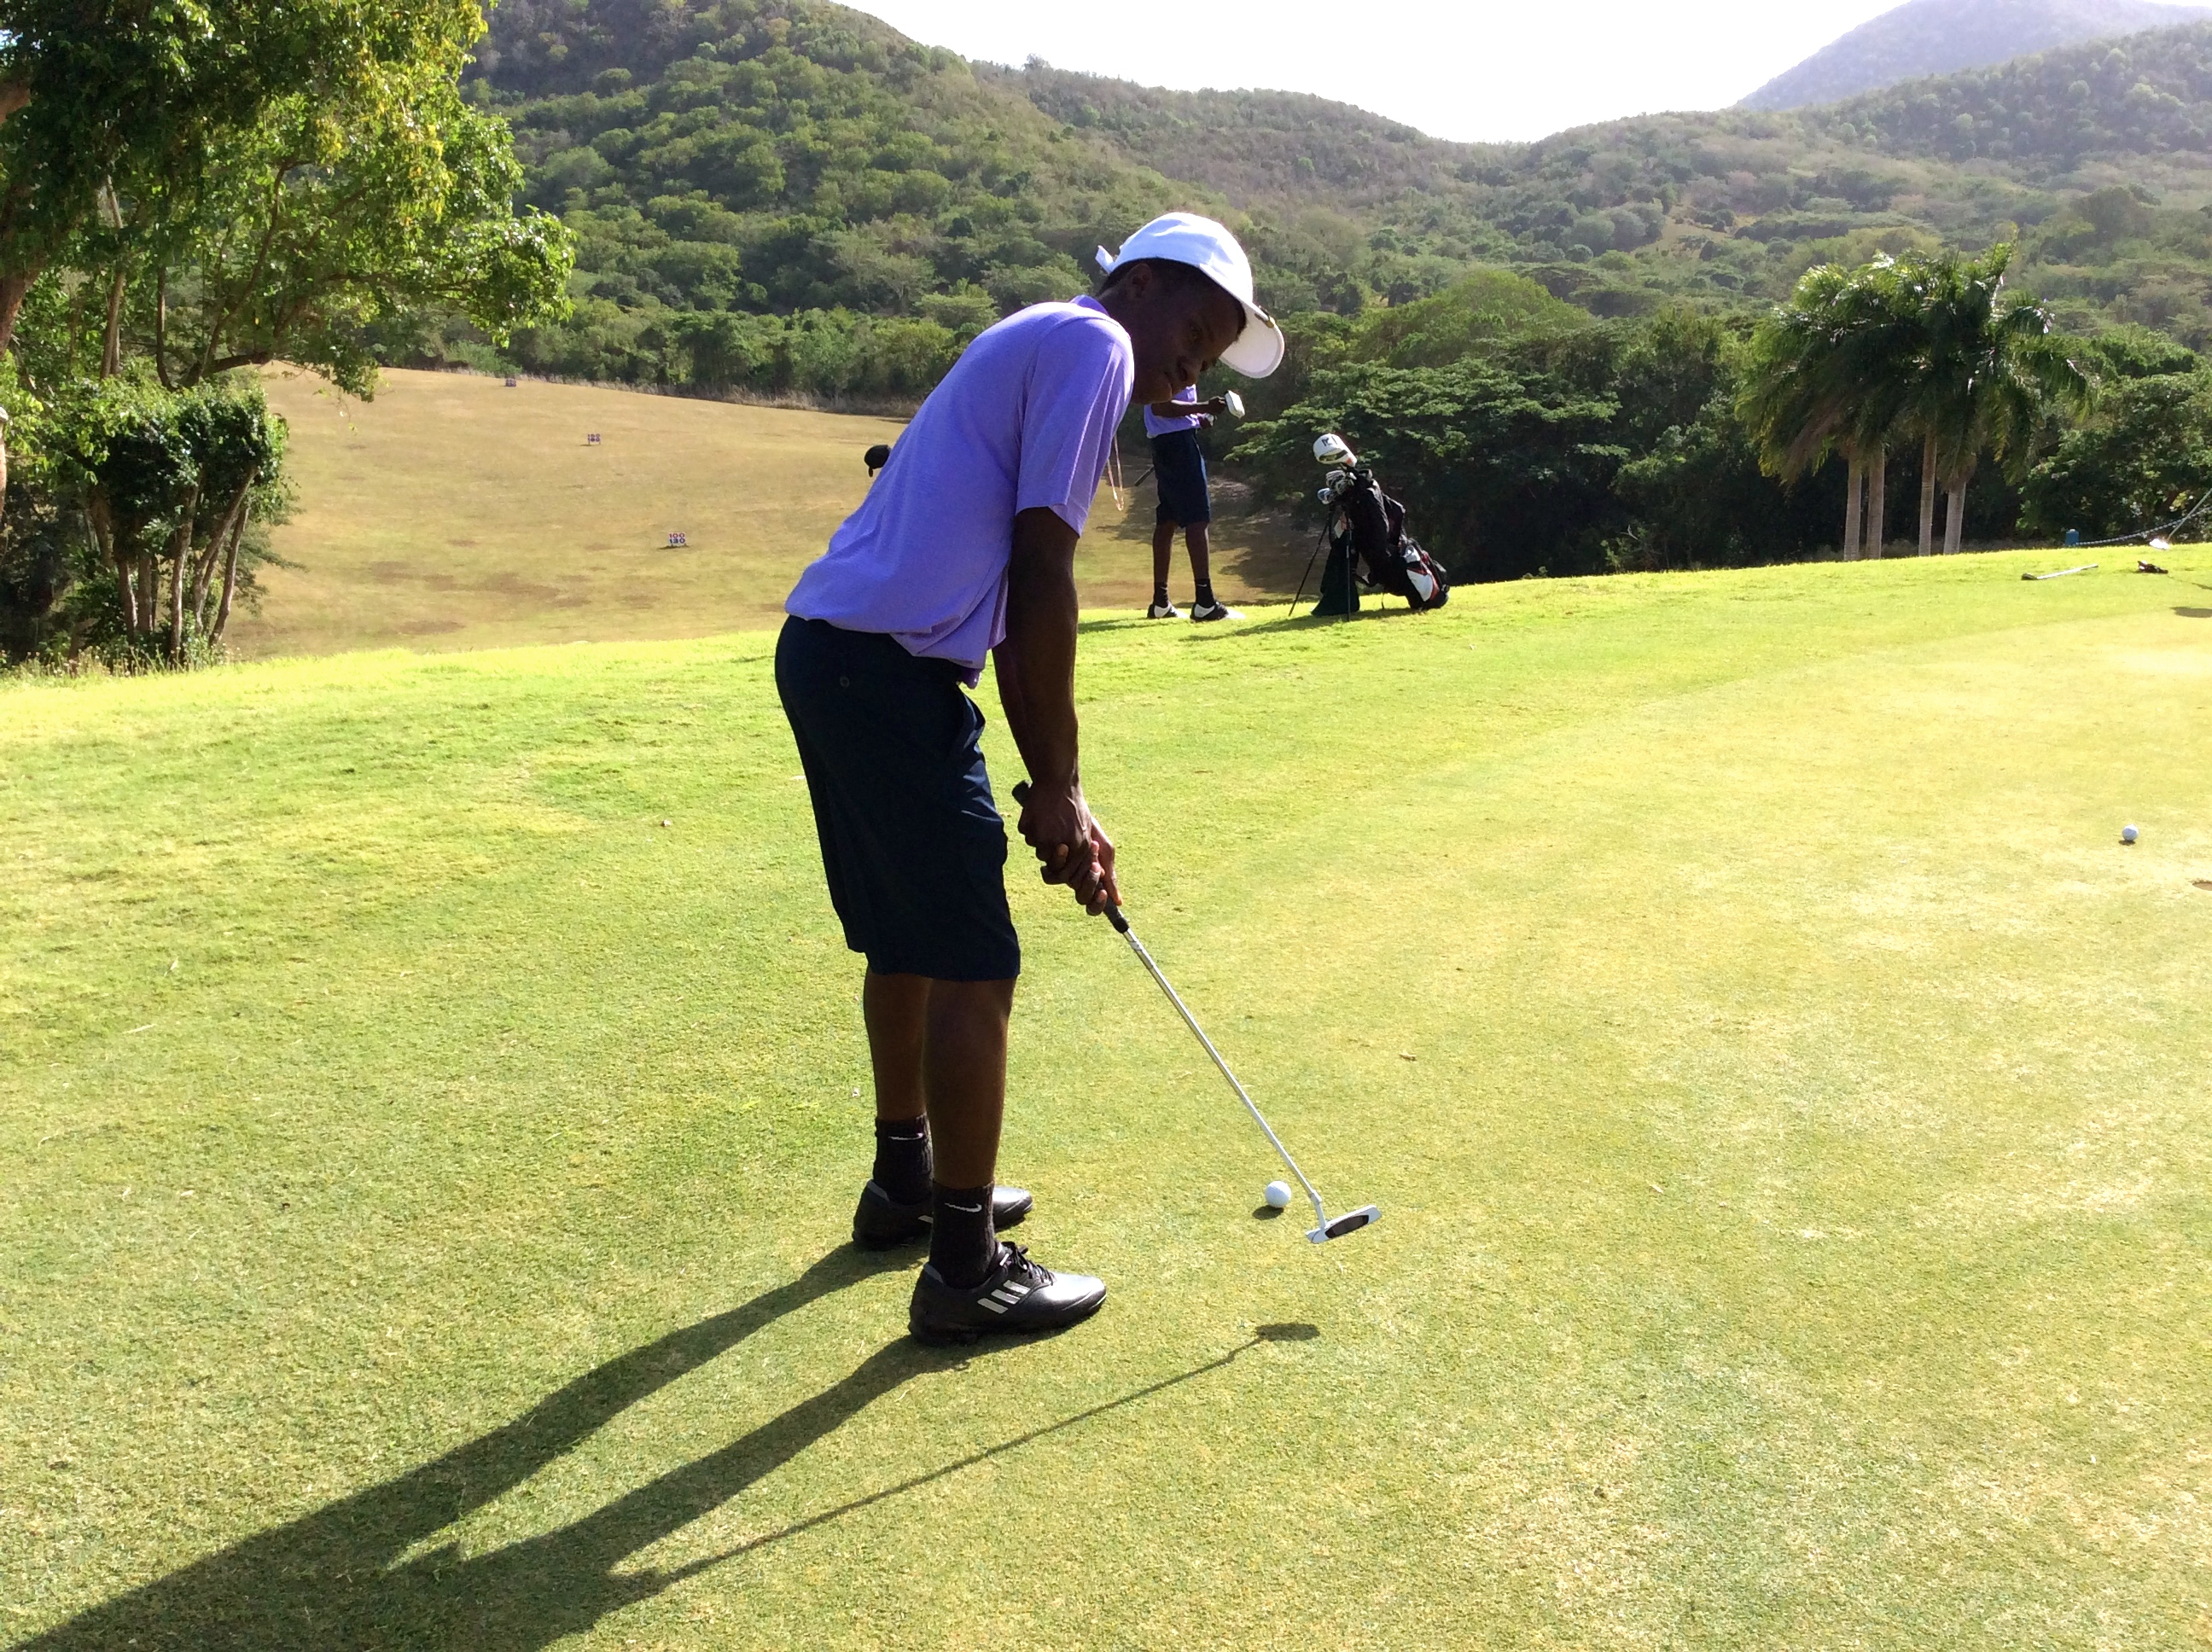 Keshawn Peets golfing at the Caribbean Golf Association Junior Championships